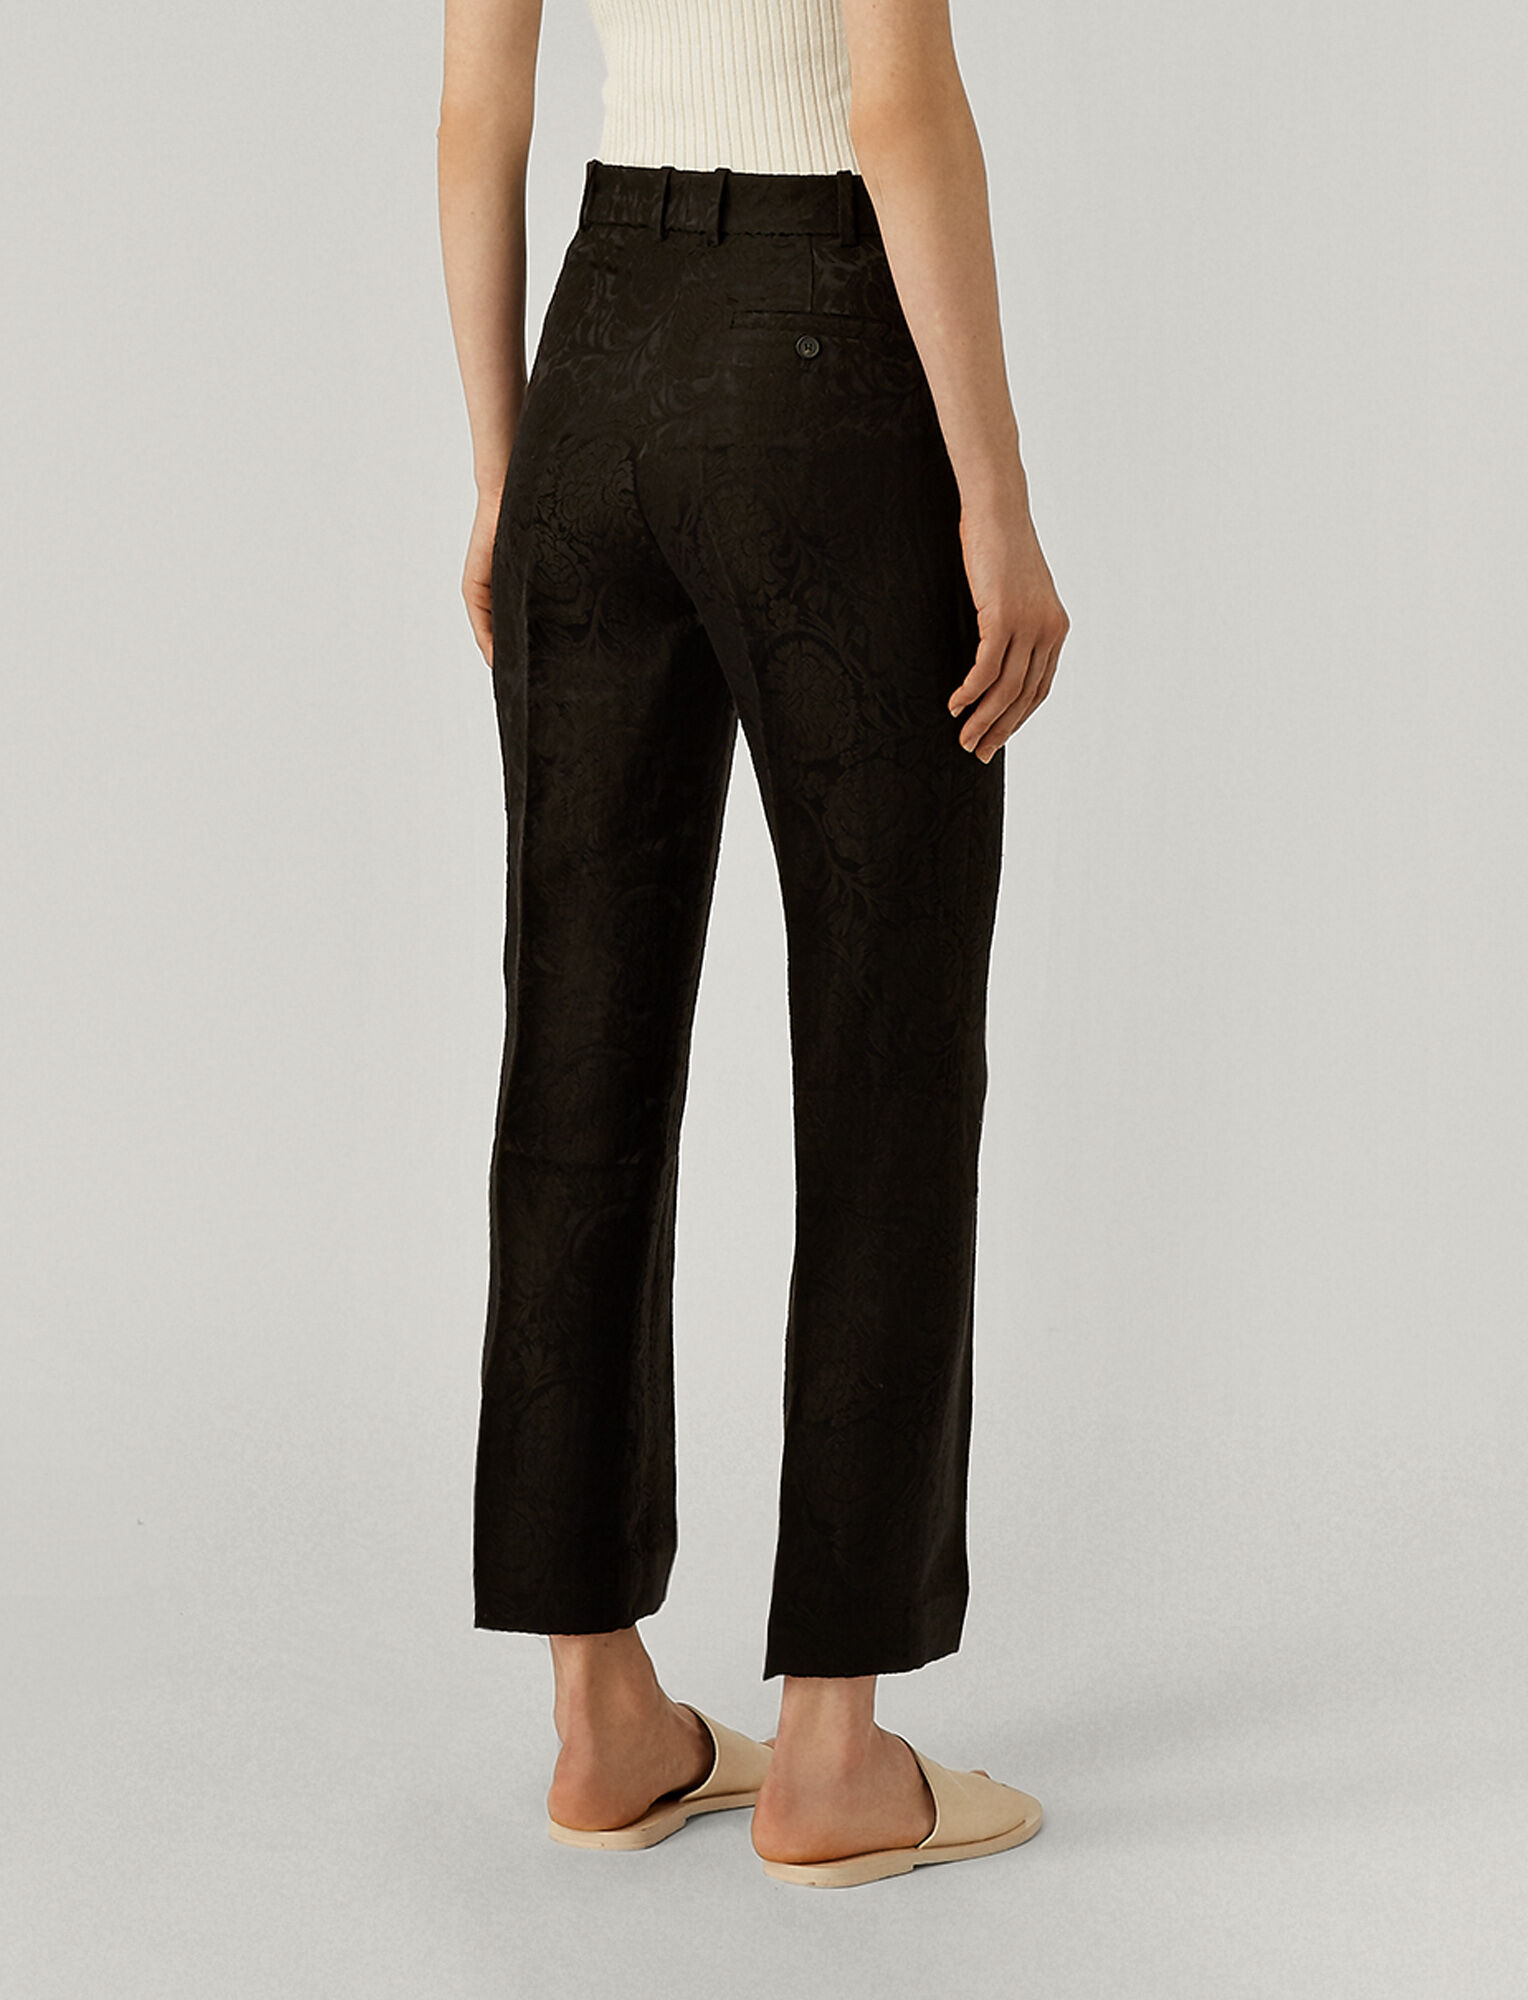 Joseph, Sloe Damask Trousers, in BLACK